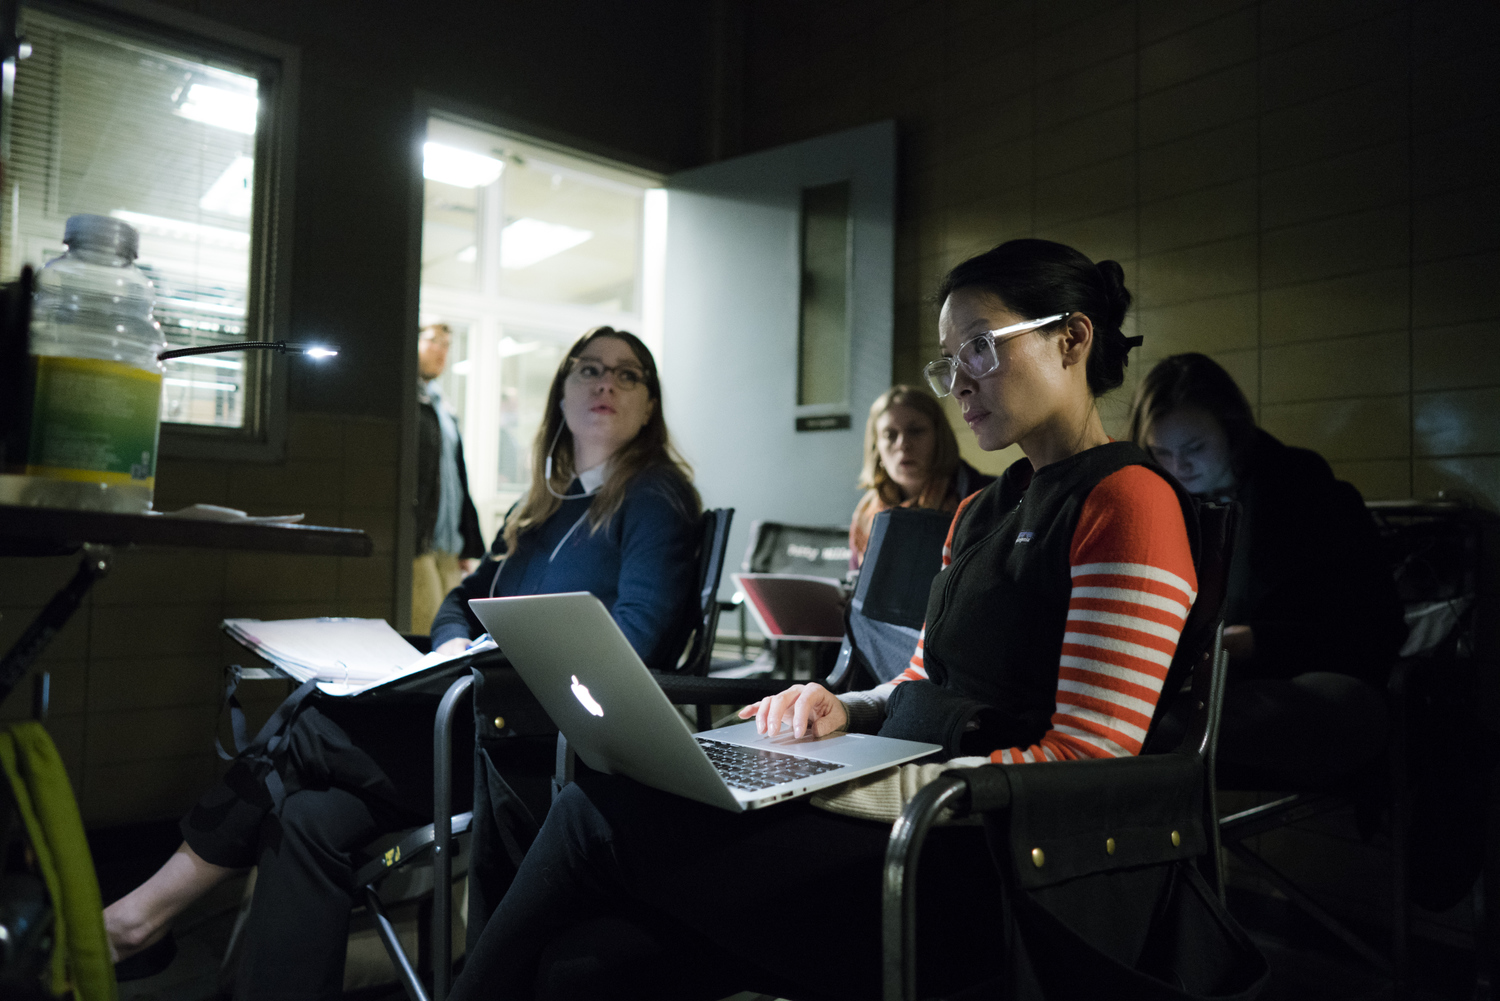 Lucy reviewing parts of the episode with her team